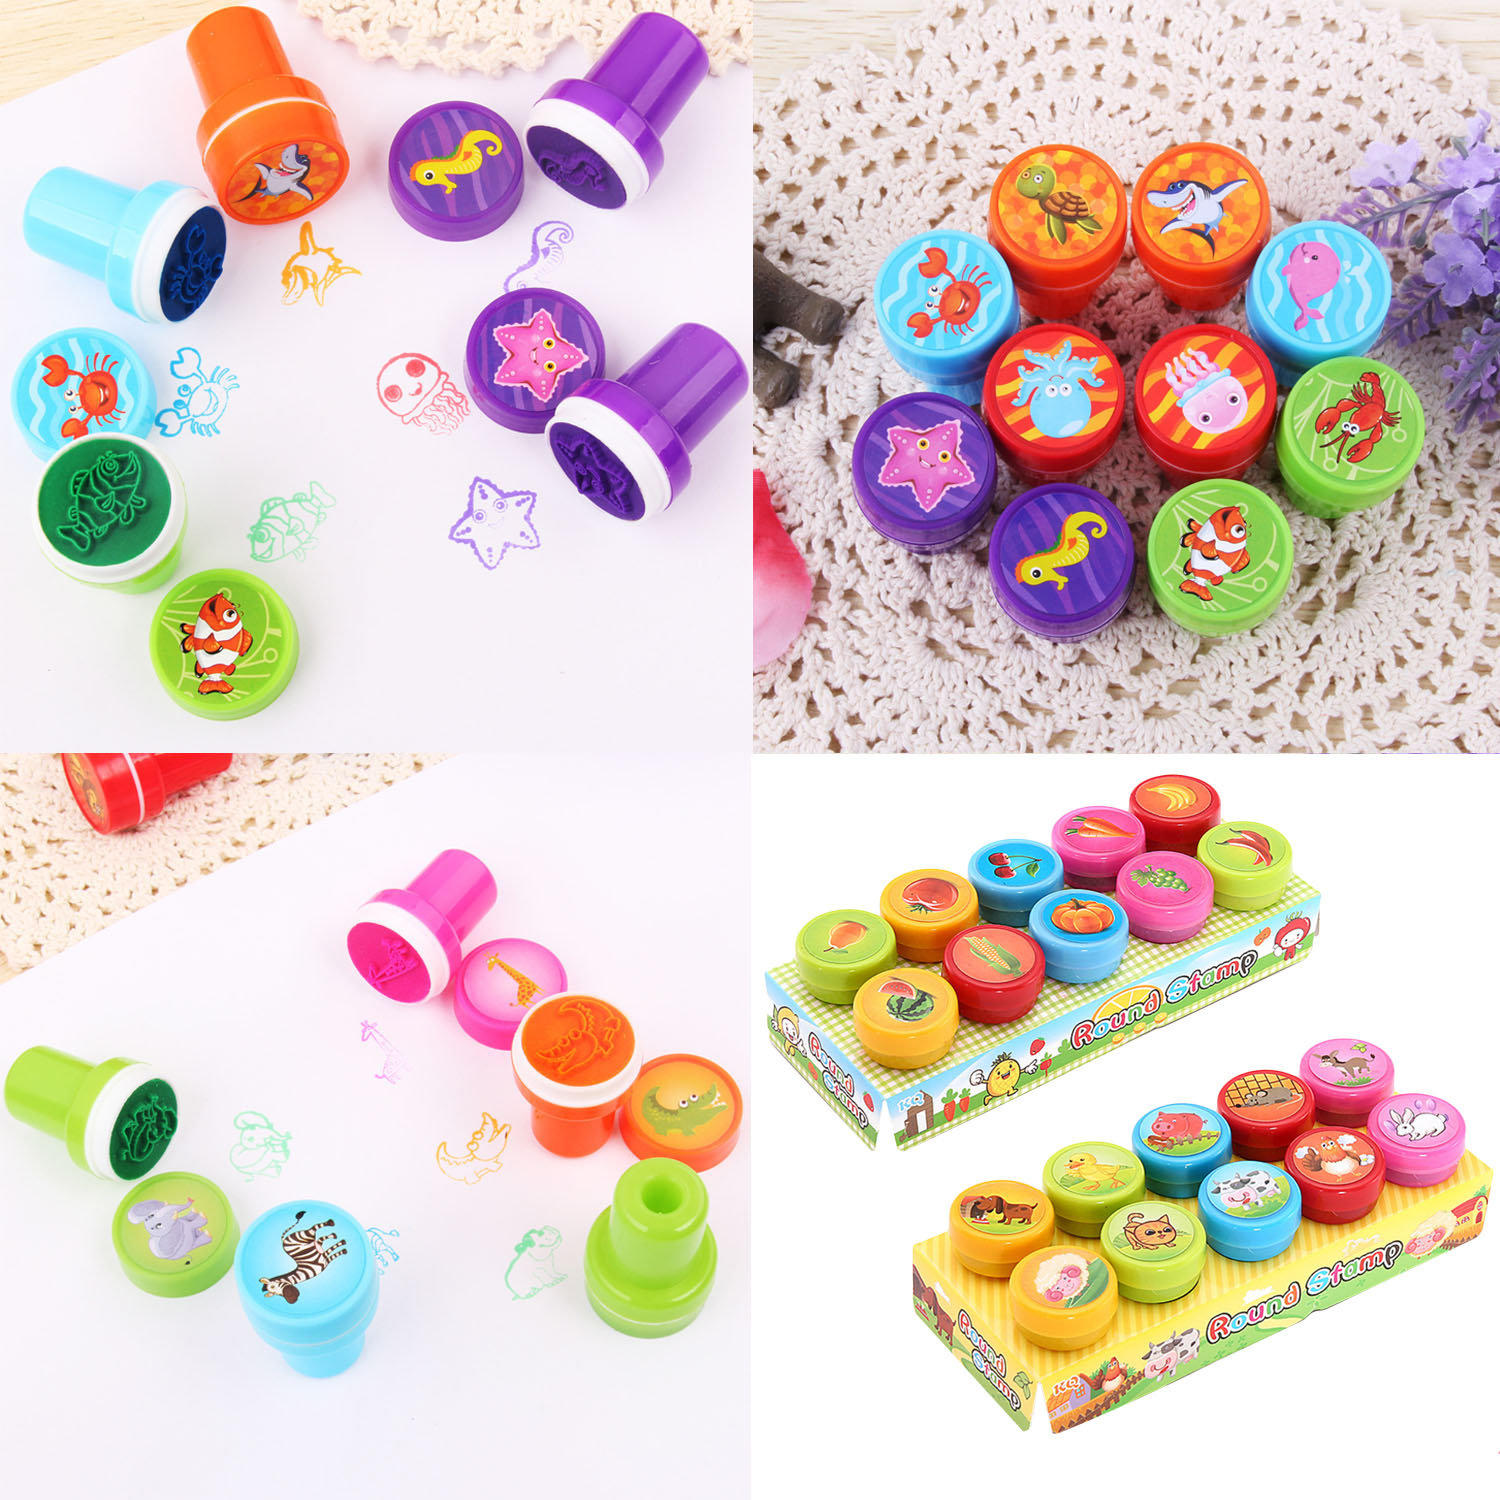 20 Kids Self-ink Cartoon Animal Fruit Vegetable Inking Stamp Toy Inkpad Stamper Accessories Art DIY Crafts Drawing Painting Toy